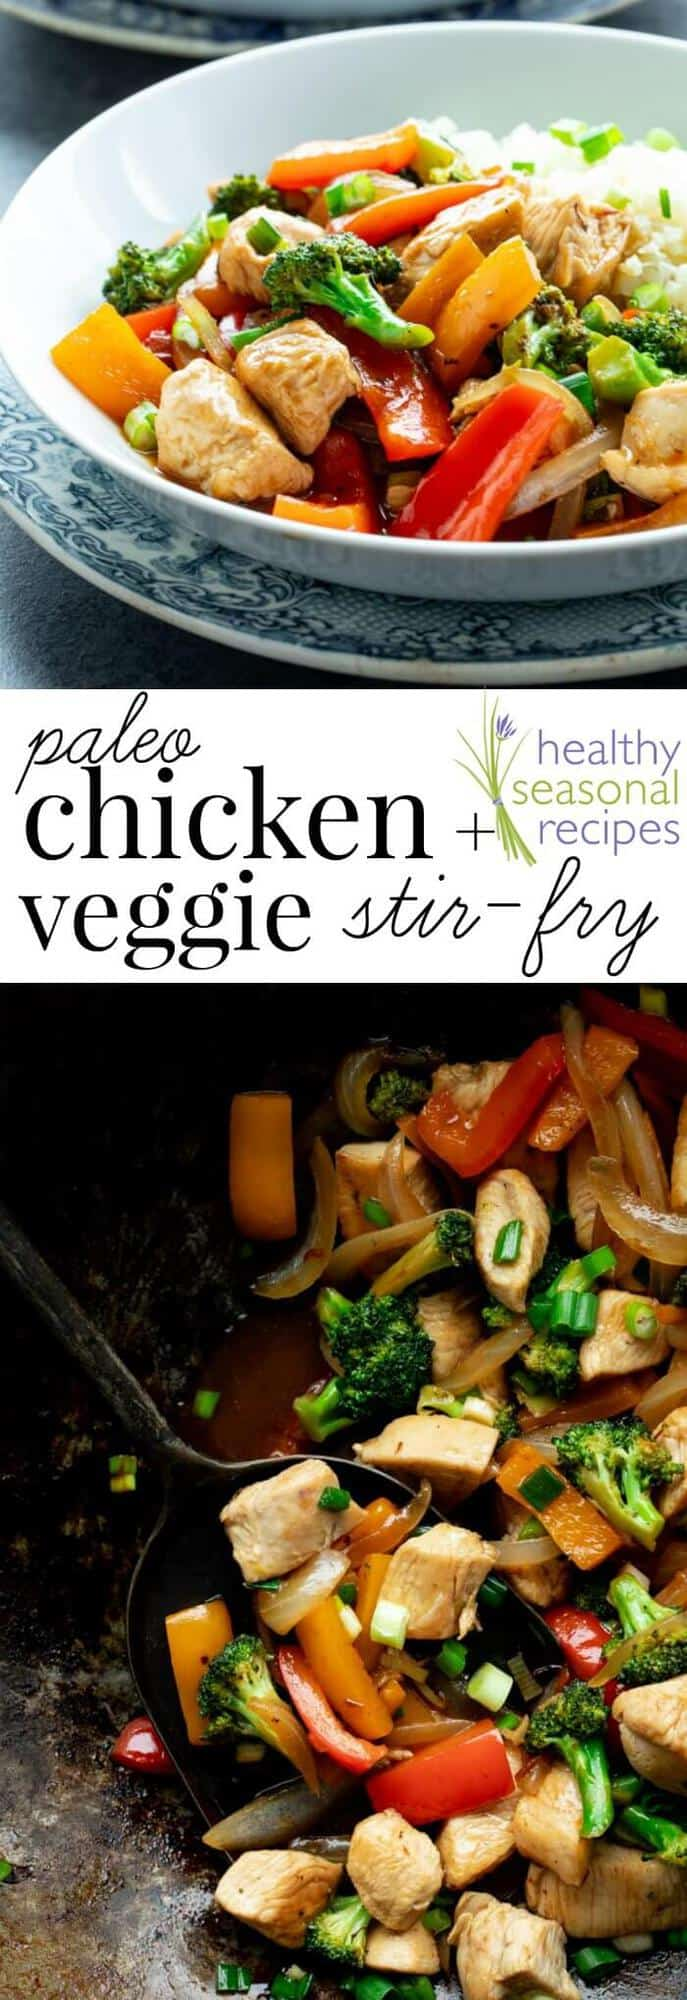 Forget about take-out! This easy and healthy Chicken and Veggie Stir-fry is a 30 minute veggie-heavy dinner the whole family will love. It's grain-free and soy-free so that means it's Paleo friendly! It's loaded with broccoli, peppers and boneless skinless chicken breast. #paleo #stirfry #chicken #healthy #easy #30minuterecipe #dinner #entree #broccoli #peppers #veggies #chickenandveggies #grainfree #soyfree